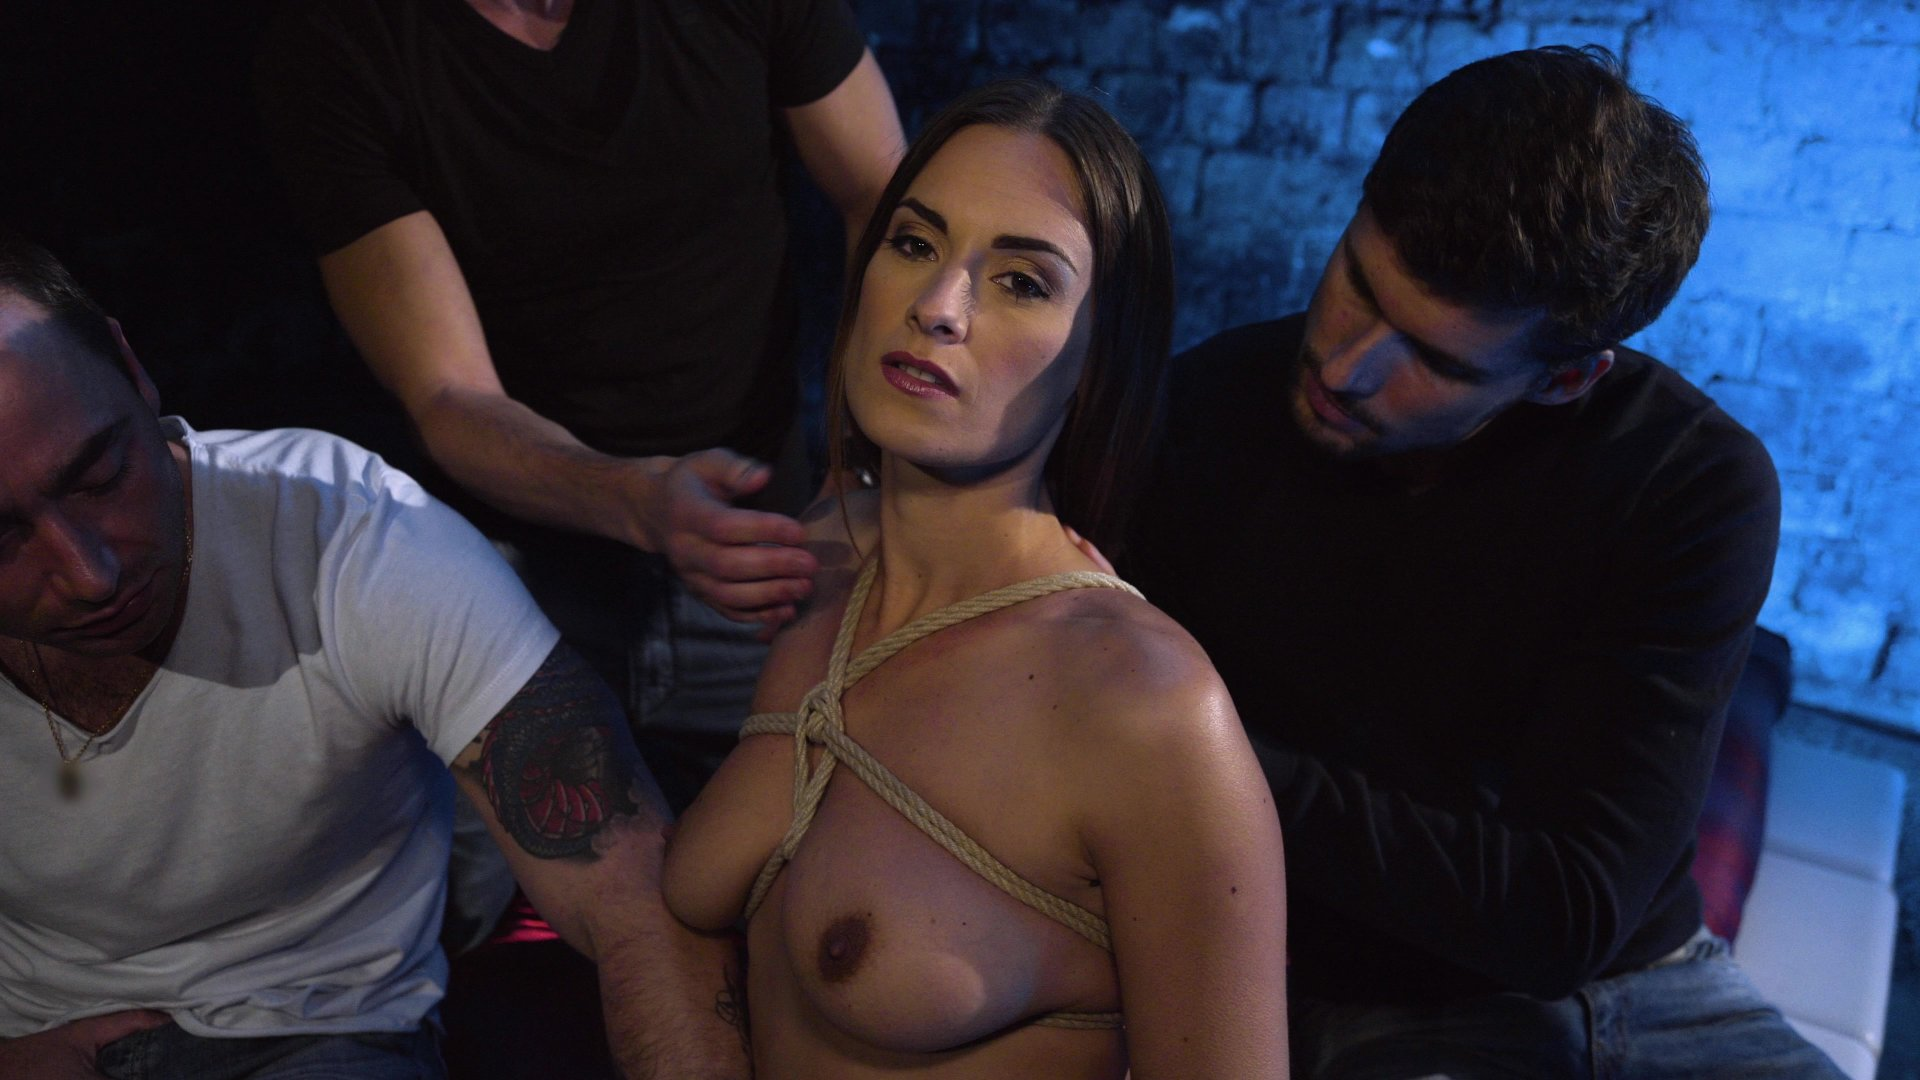 Preview image 12 out of 20  of scene 7 from Claire Desires Of Submission